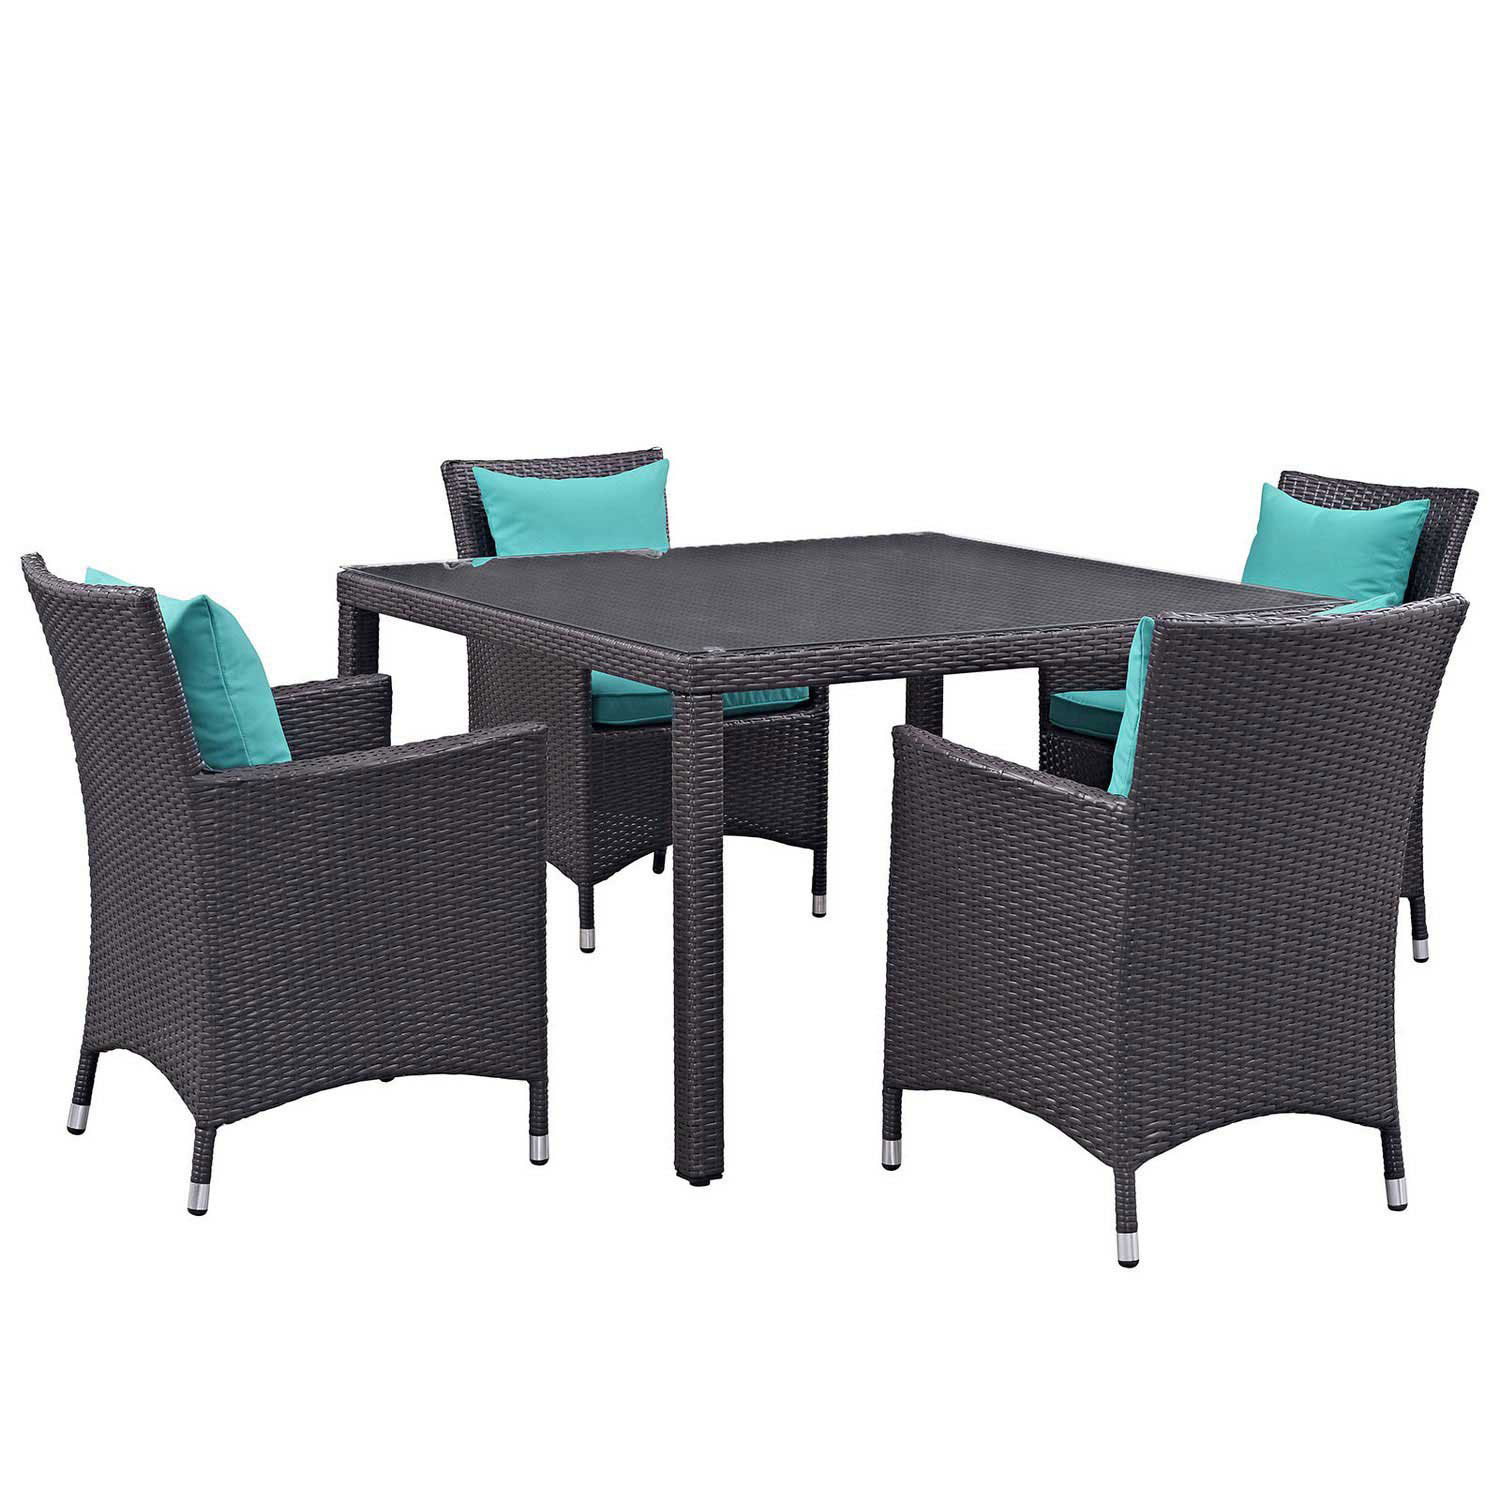 Modway Convene 5 Piece Outdoor Patio Dining Set - Espresso Turquoise